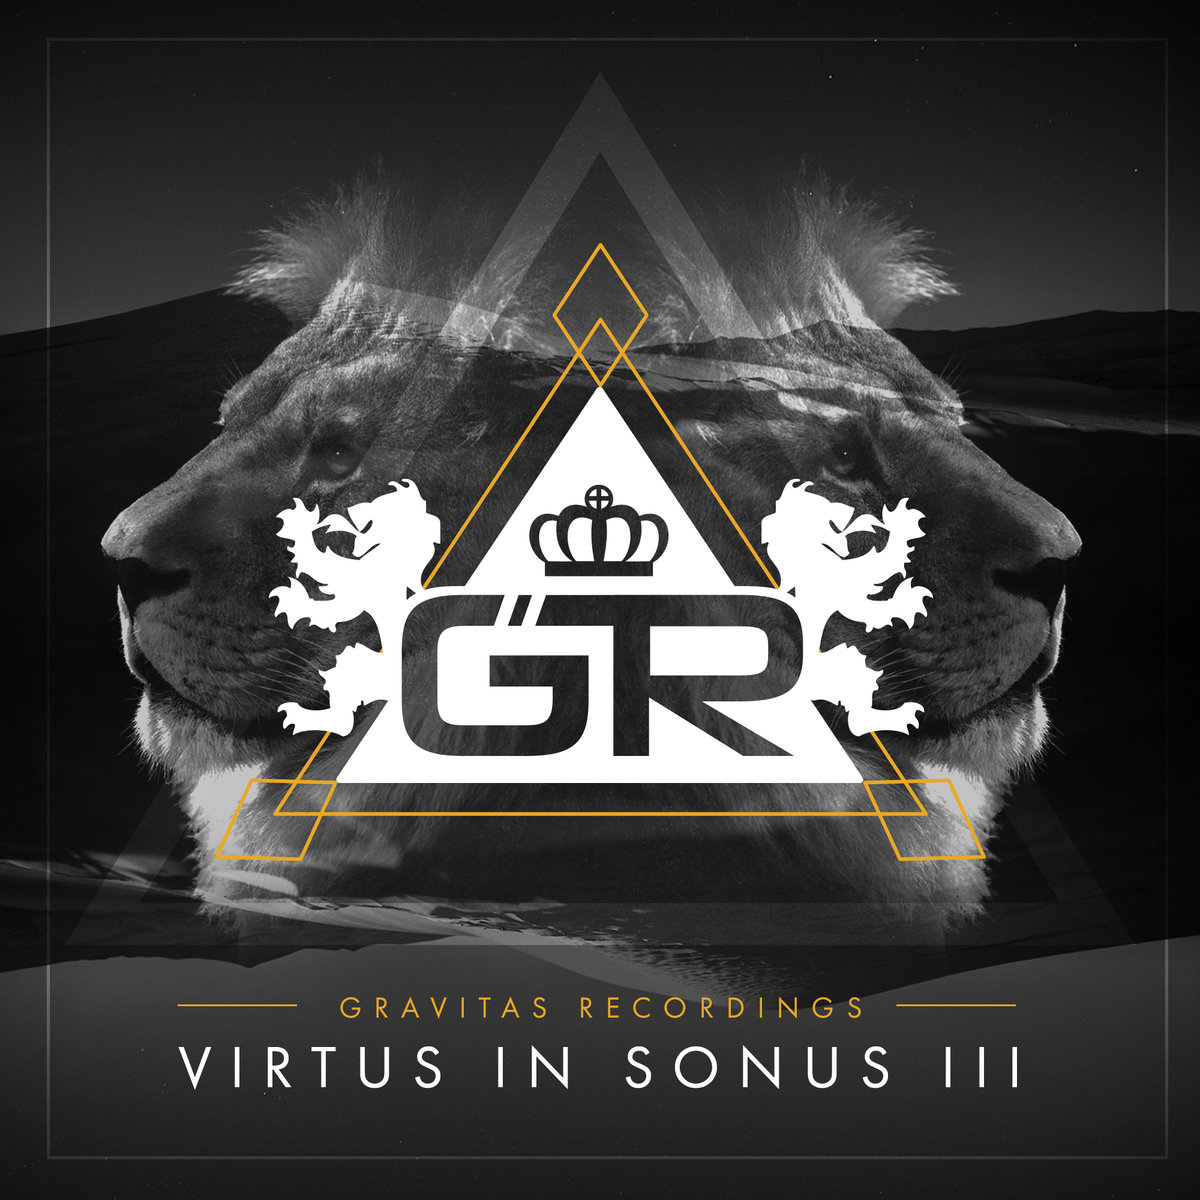 Bassline Drift - Drink The Water Down @ 'Virtus In Sonus III' album (Austin)